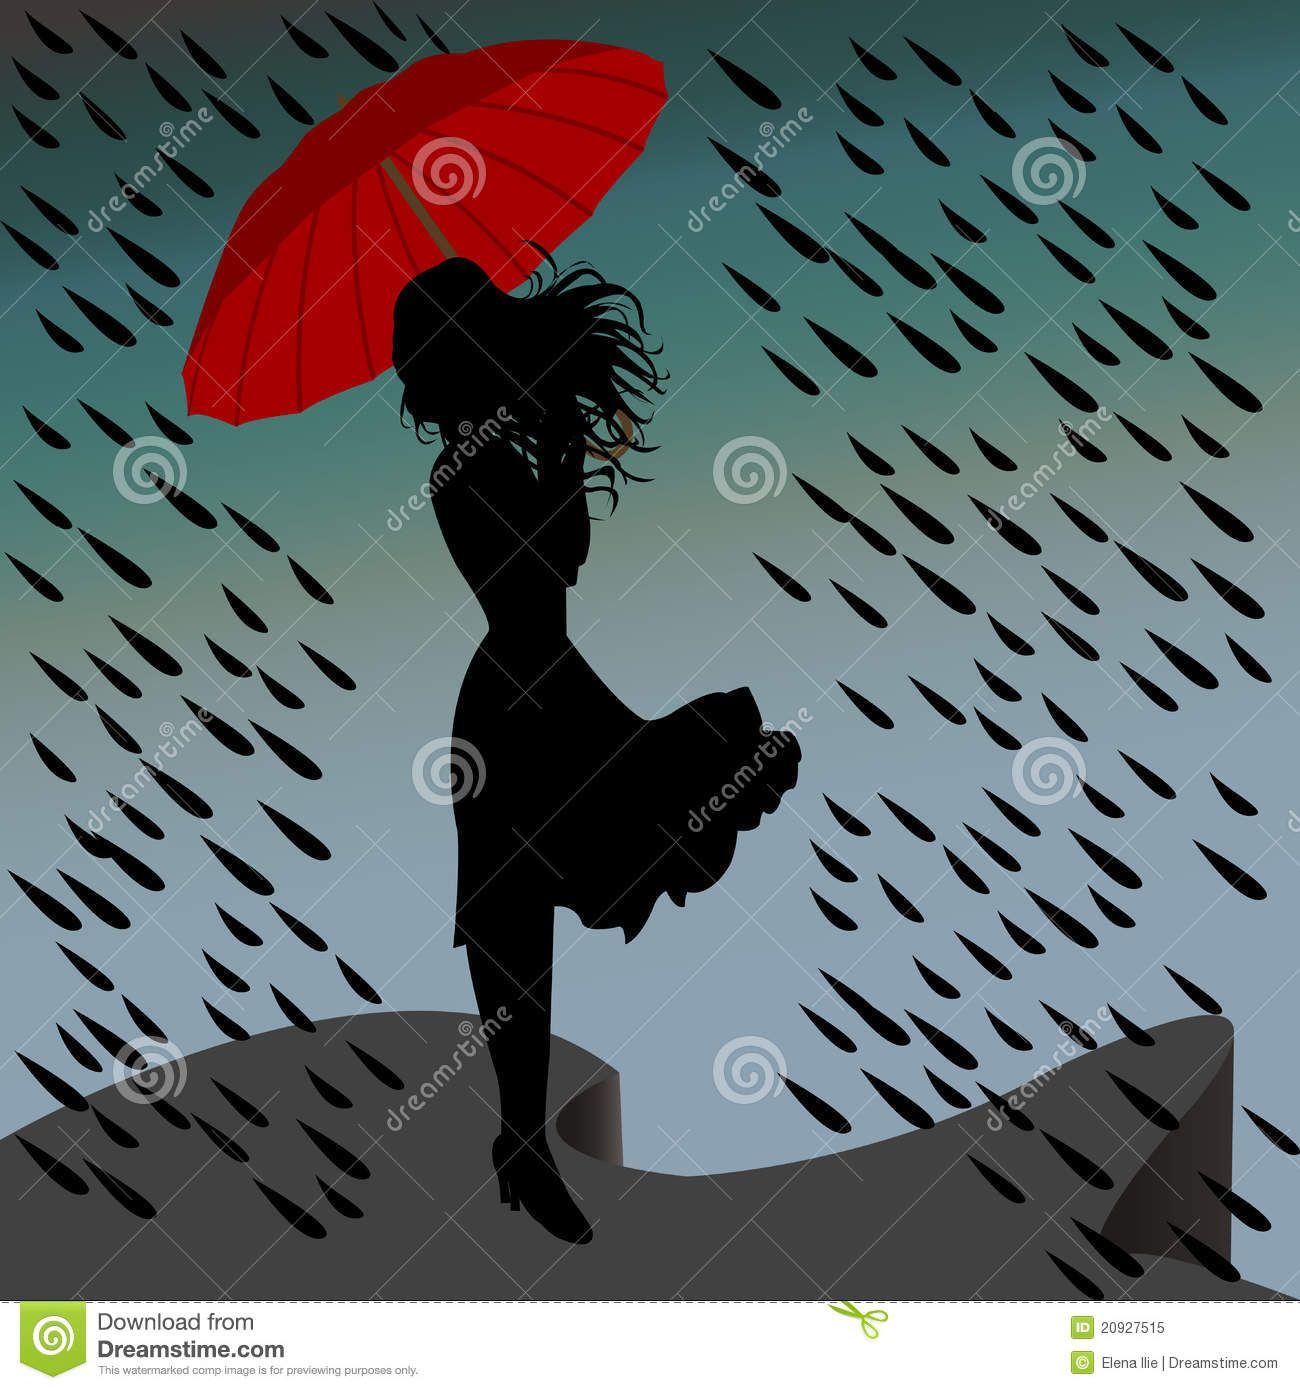 Women With Umbrellas At Graves In Rain Woman Silhouette In The